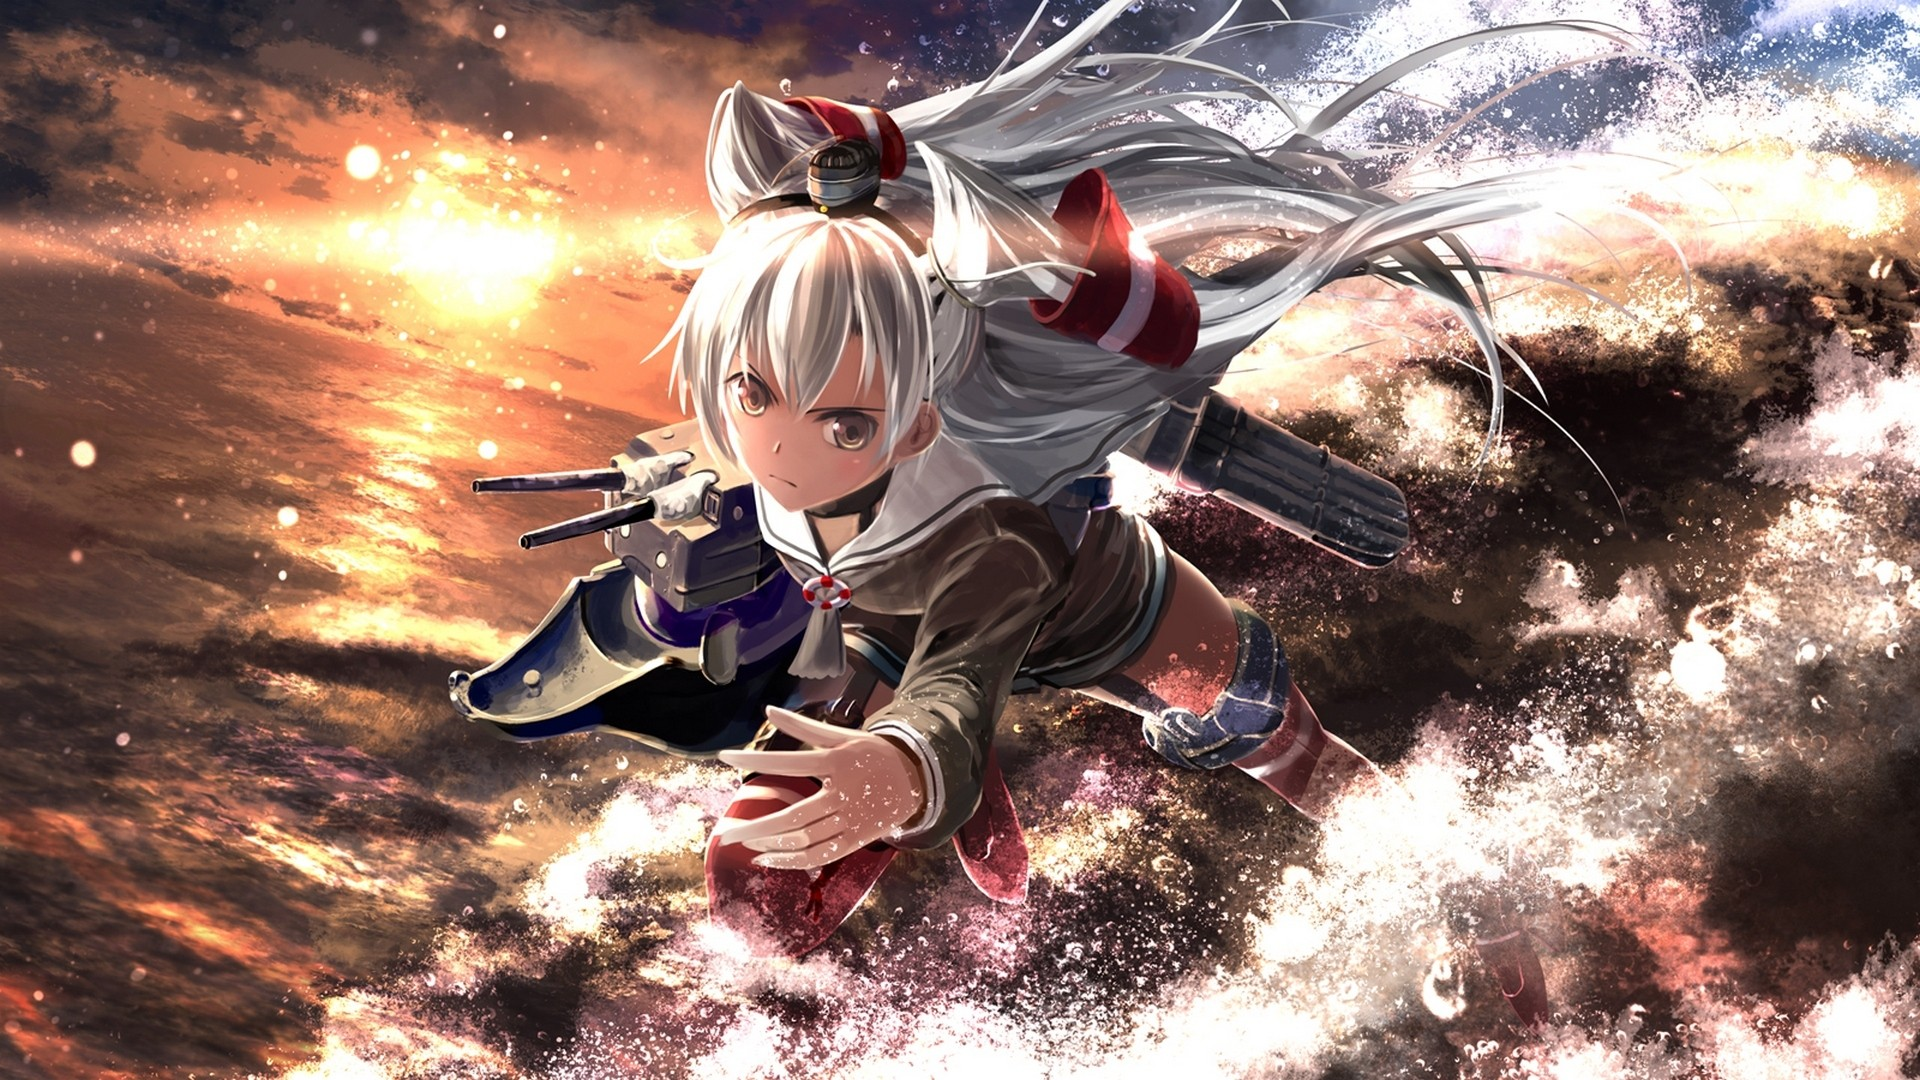 Kancolle wallpaper download free beautiful high - Best site to download anime wallpapers ...